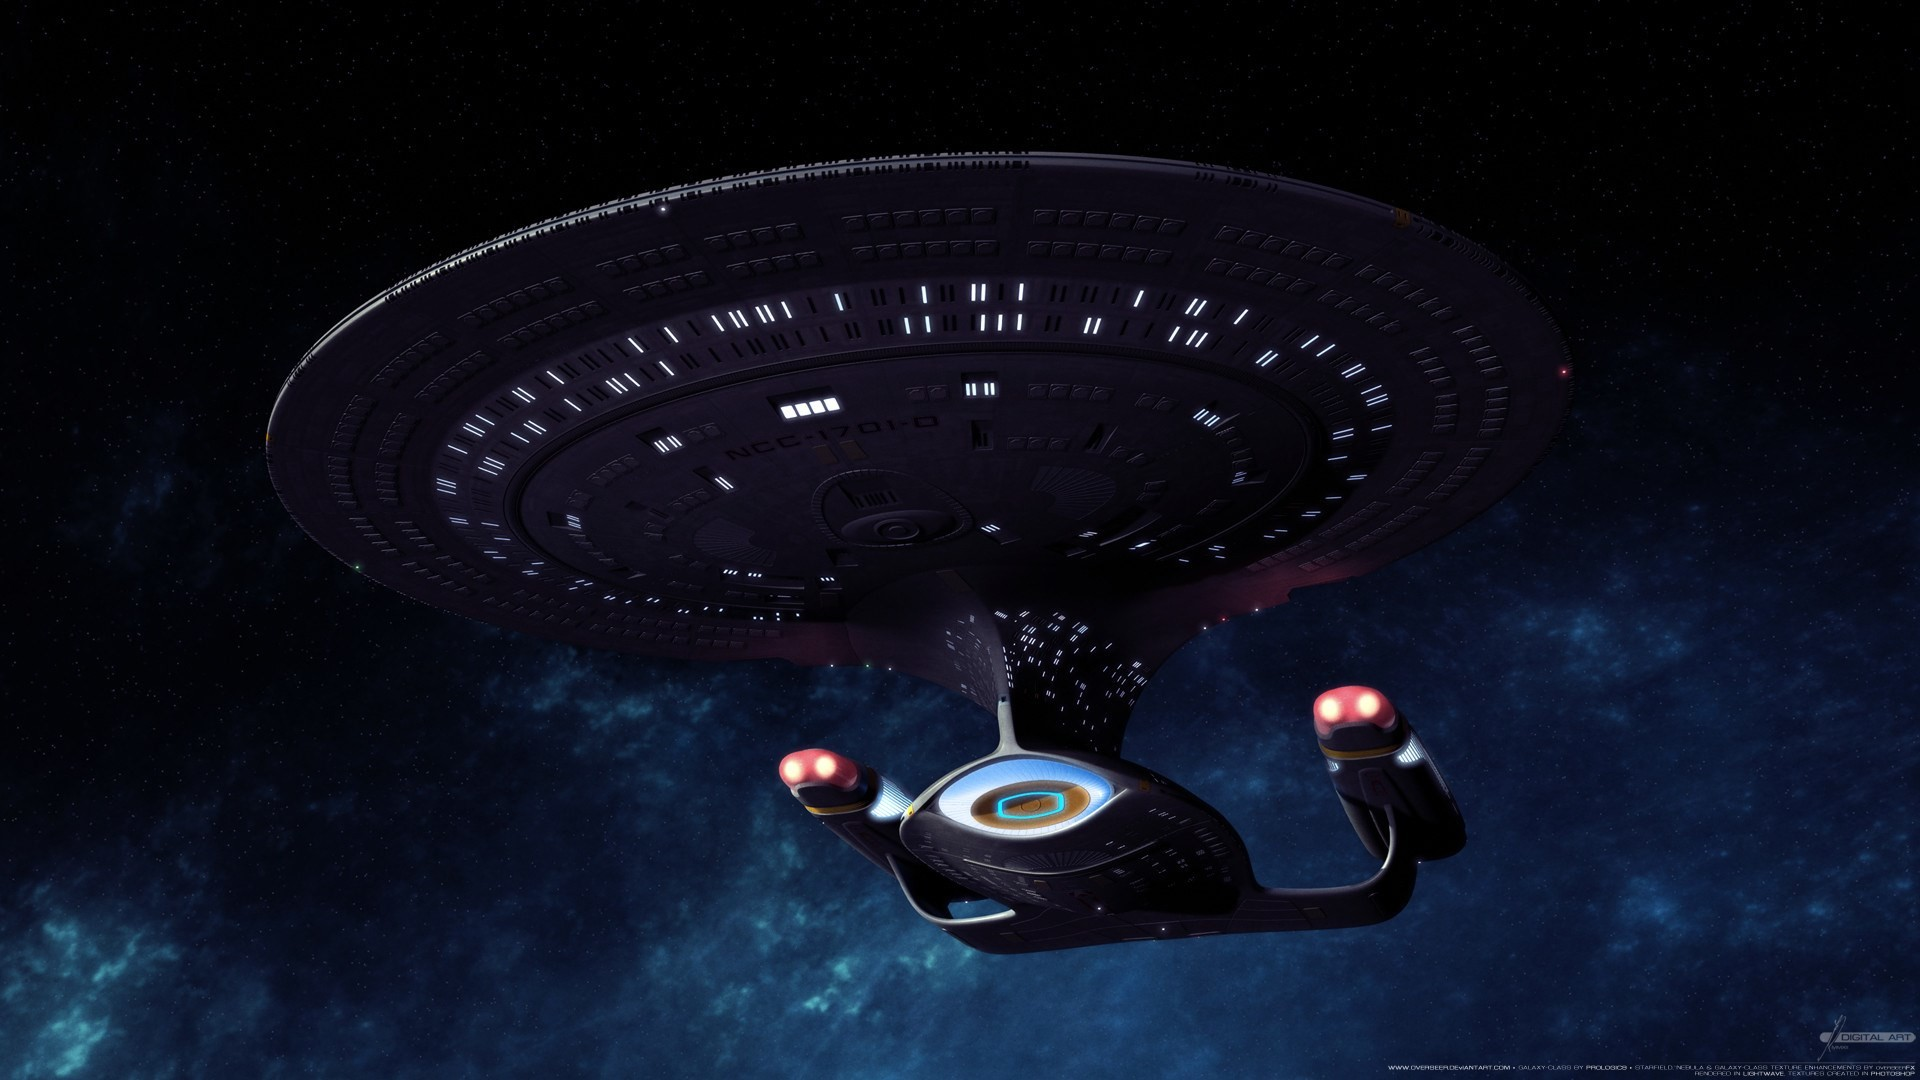 px star trek the next generation picture – Background hd by  Ormond Nash-Williams